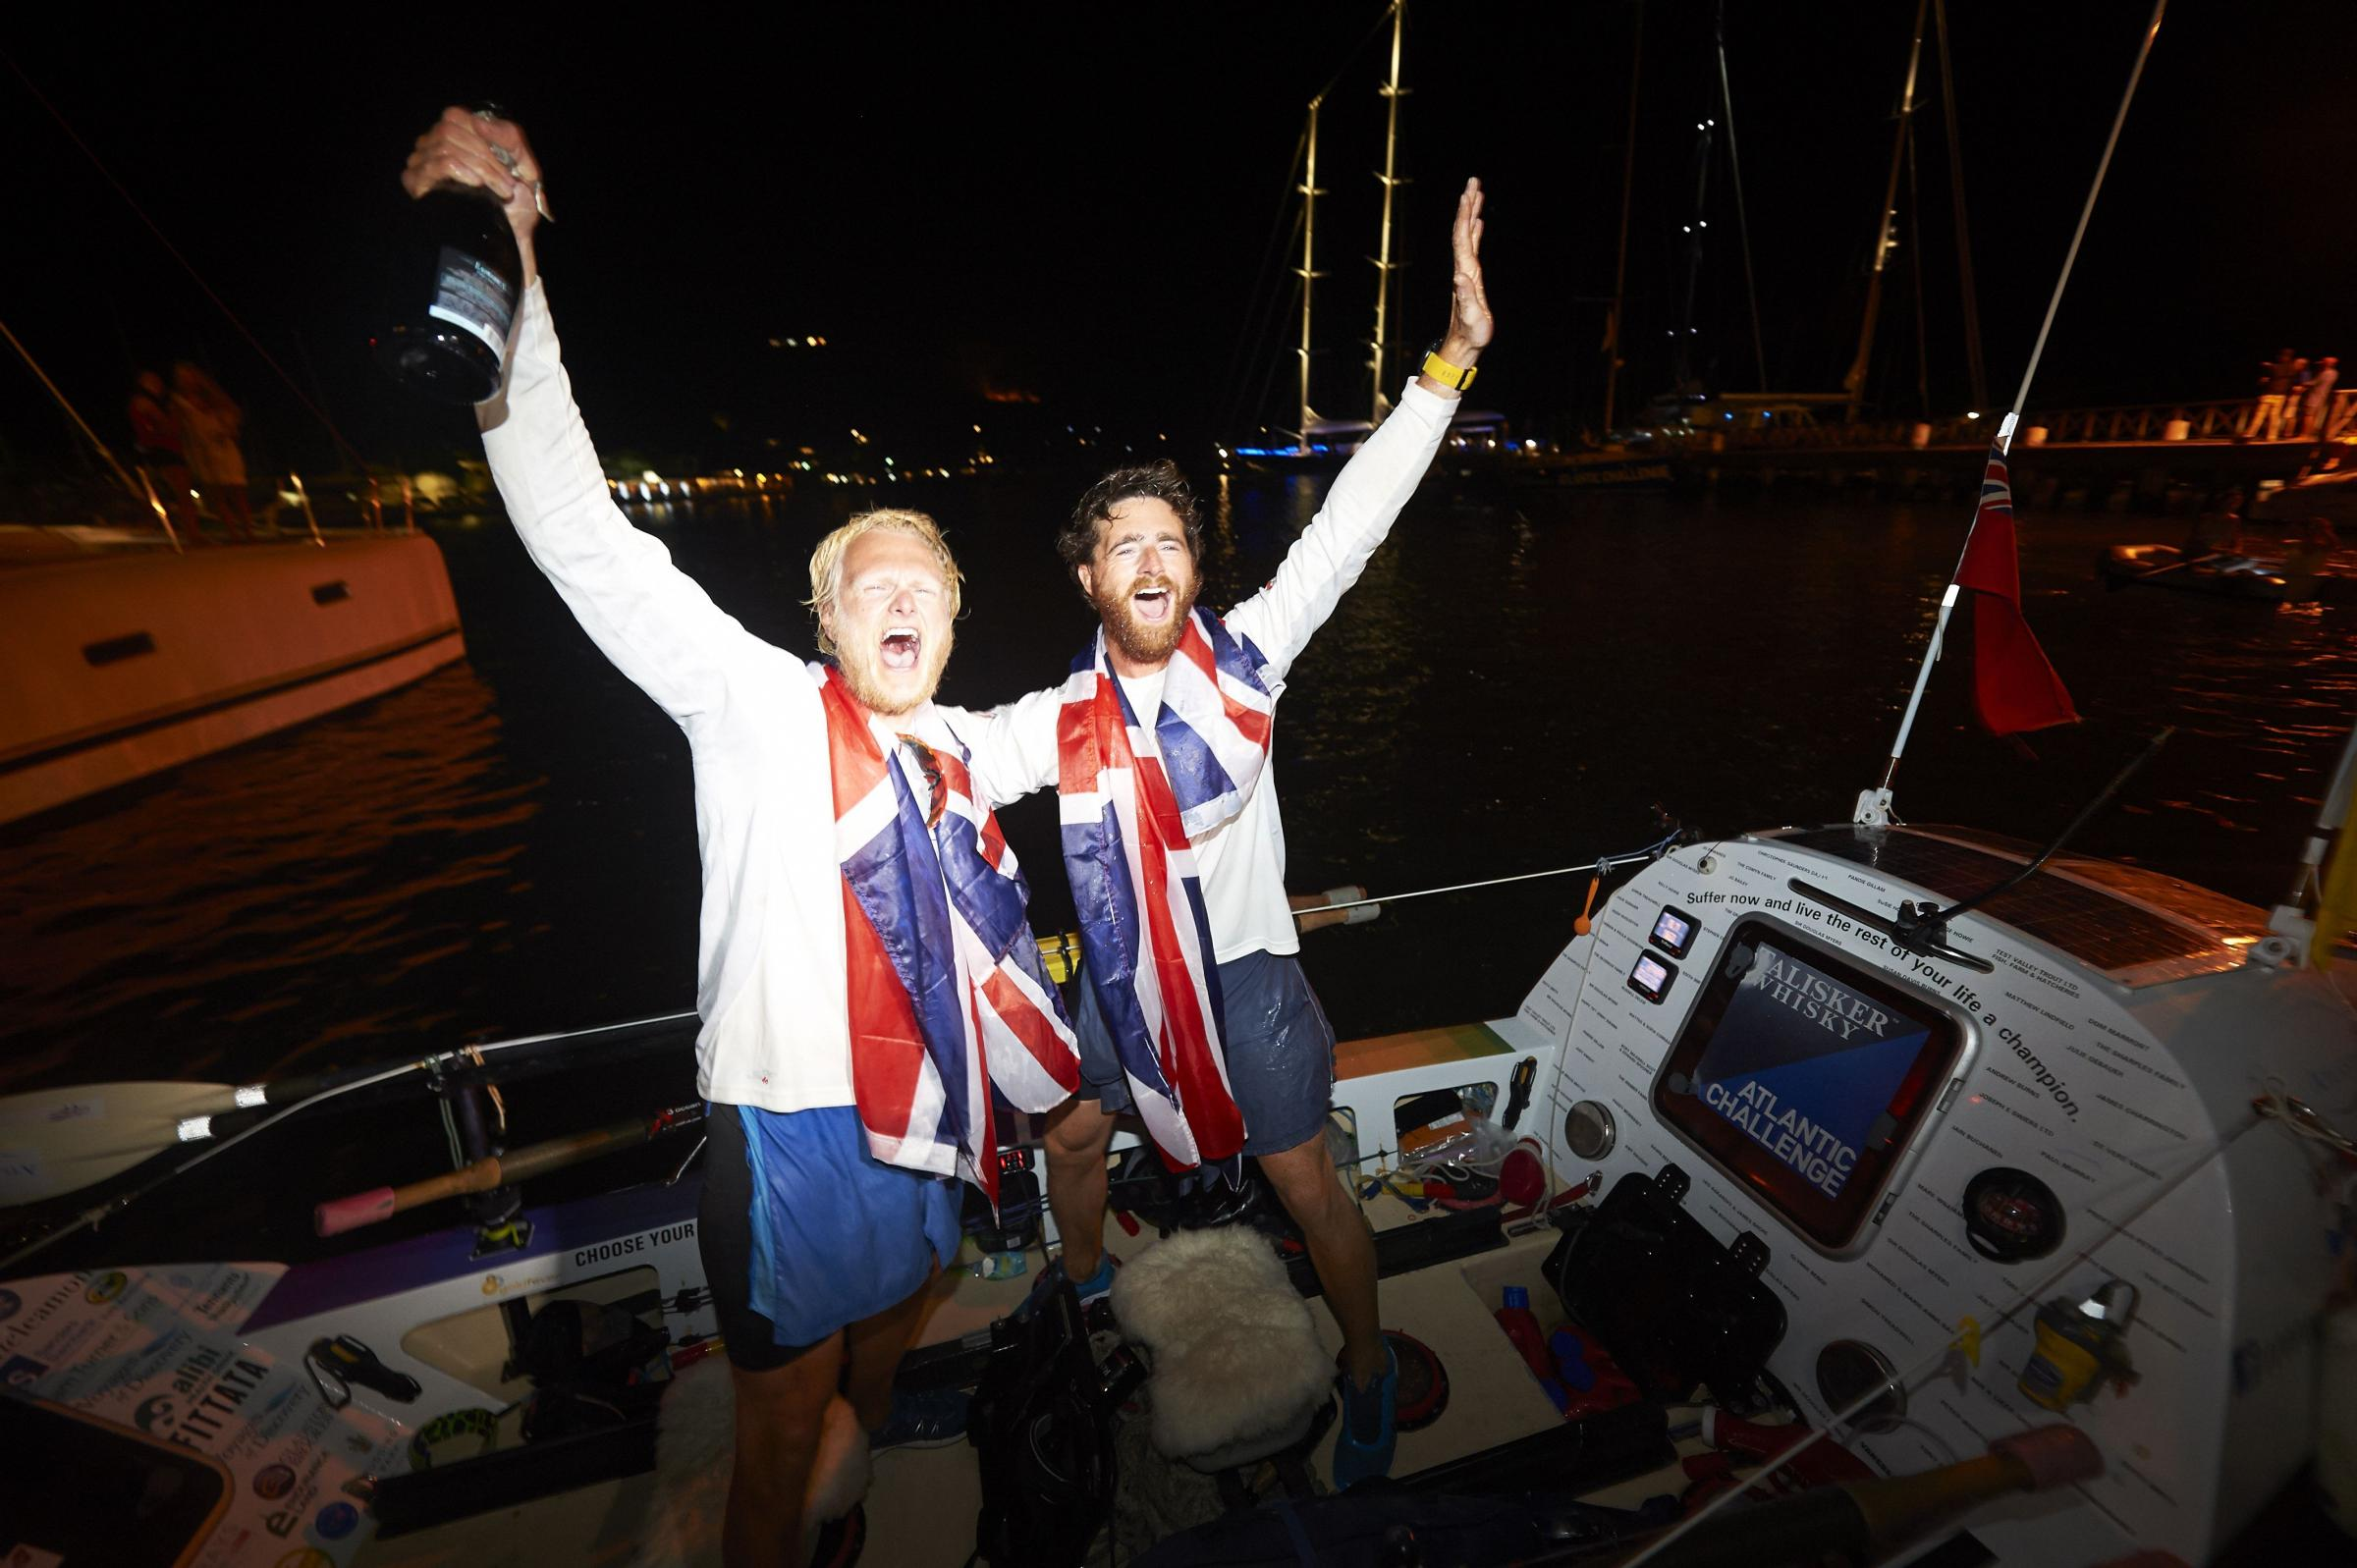 Hampshire man completes 3,000 mile charity row across Atlantic